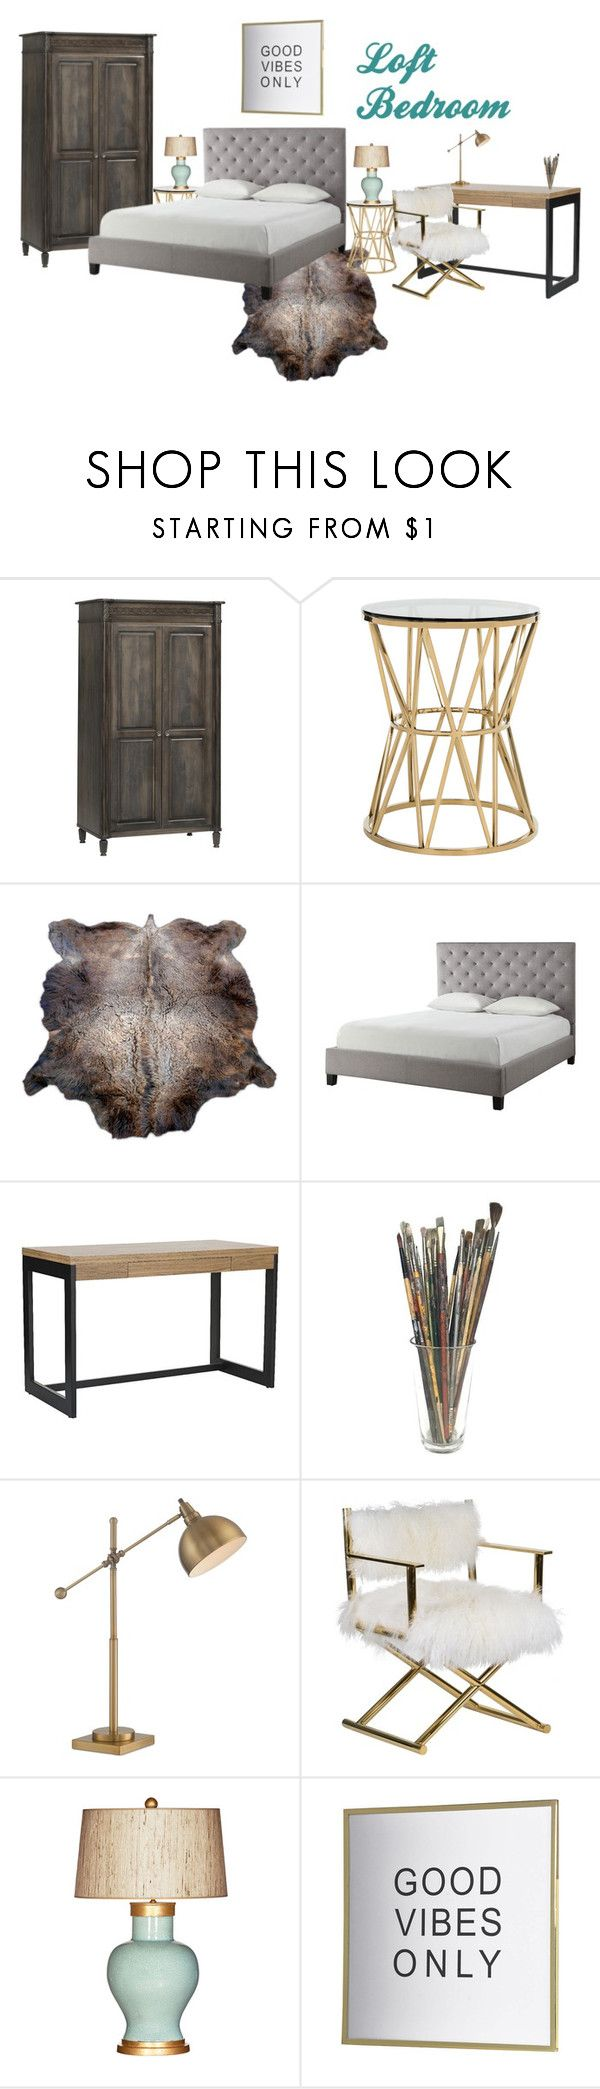 """Live-in Artists Loft Bedroom"" by masterofmurphy on Polyvore featuring interior, interiors, interior design, home, home decor, interior decorating, DutchCrafters, Safavieh, Tribecca Home and Lite Source"